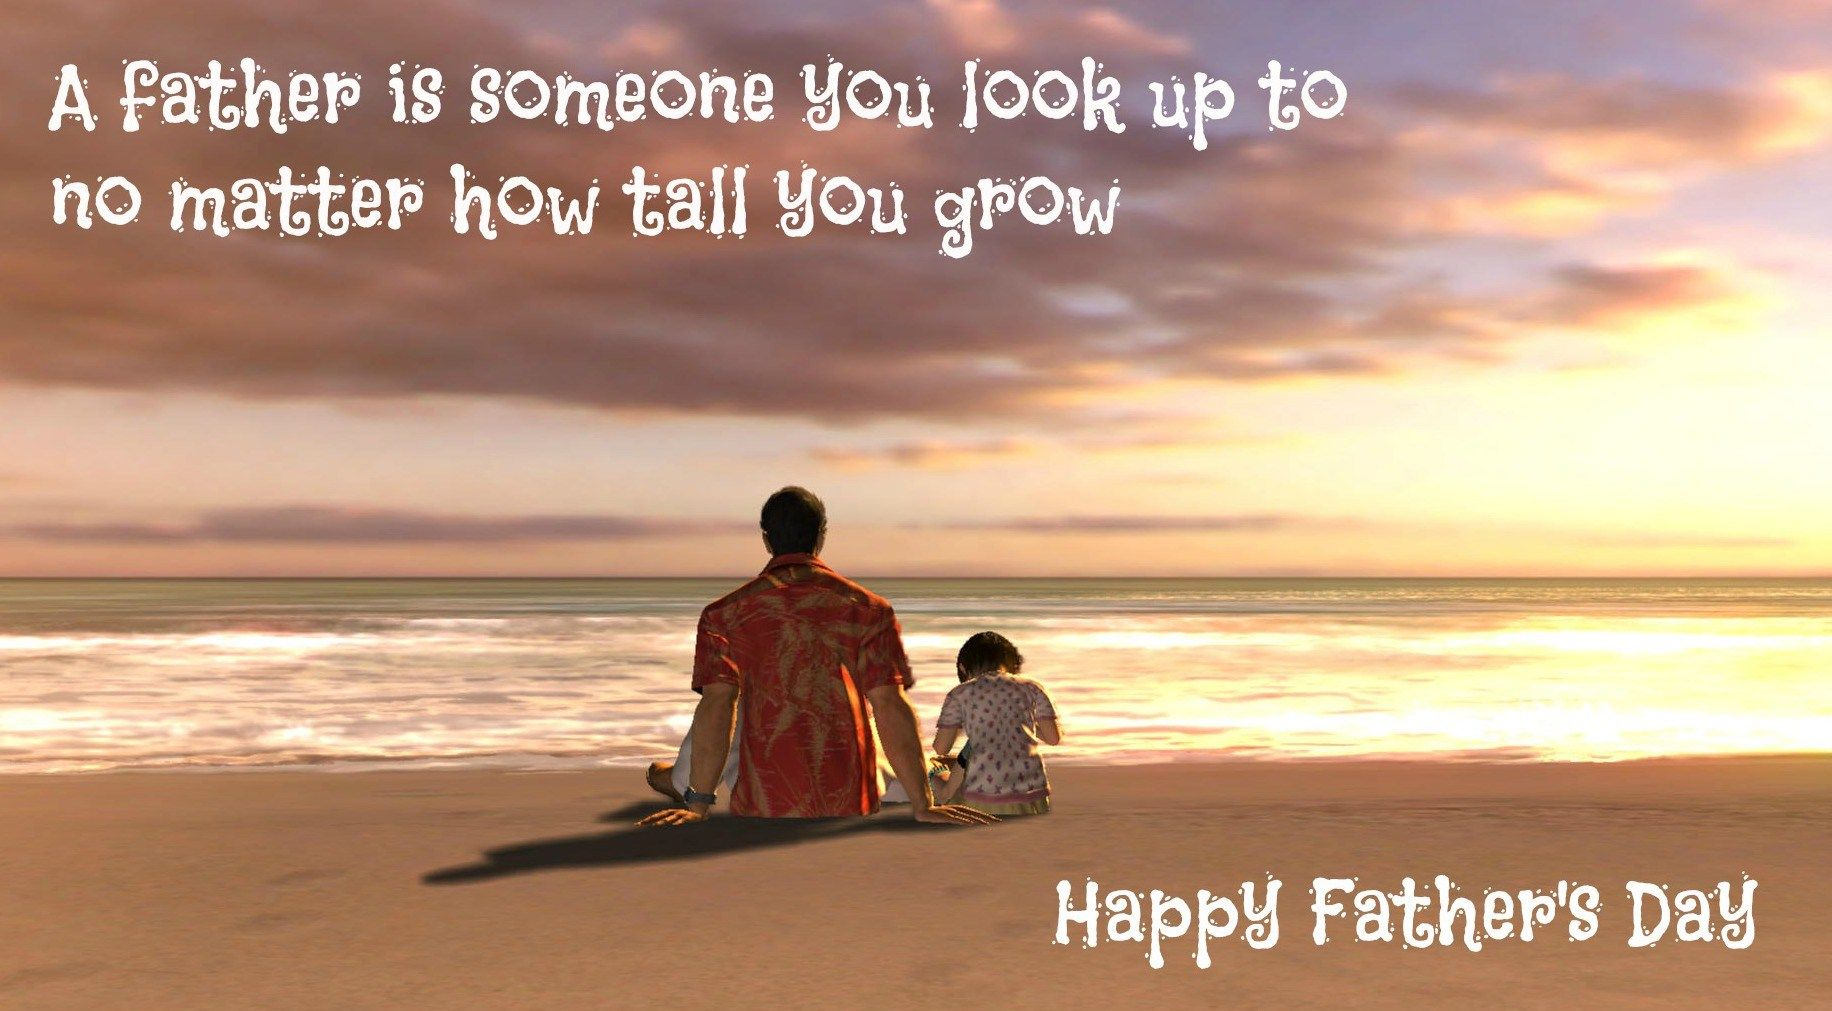 Fathers Day Quotes From Son To Dad Fathers Day Images Happy Father Day Quotes Fathers Day Quotes